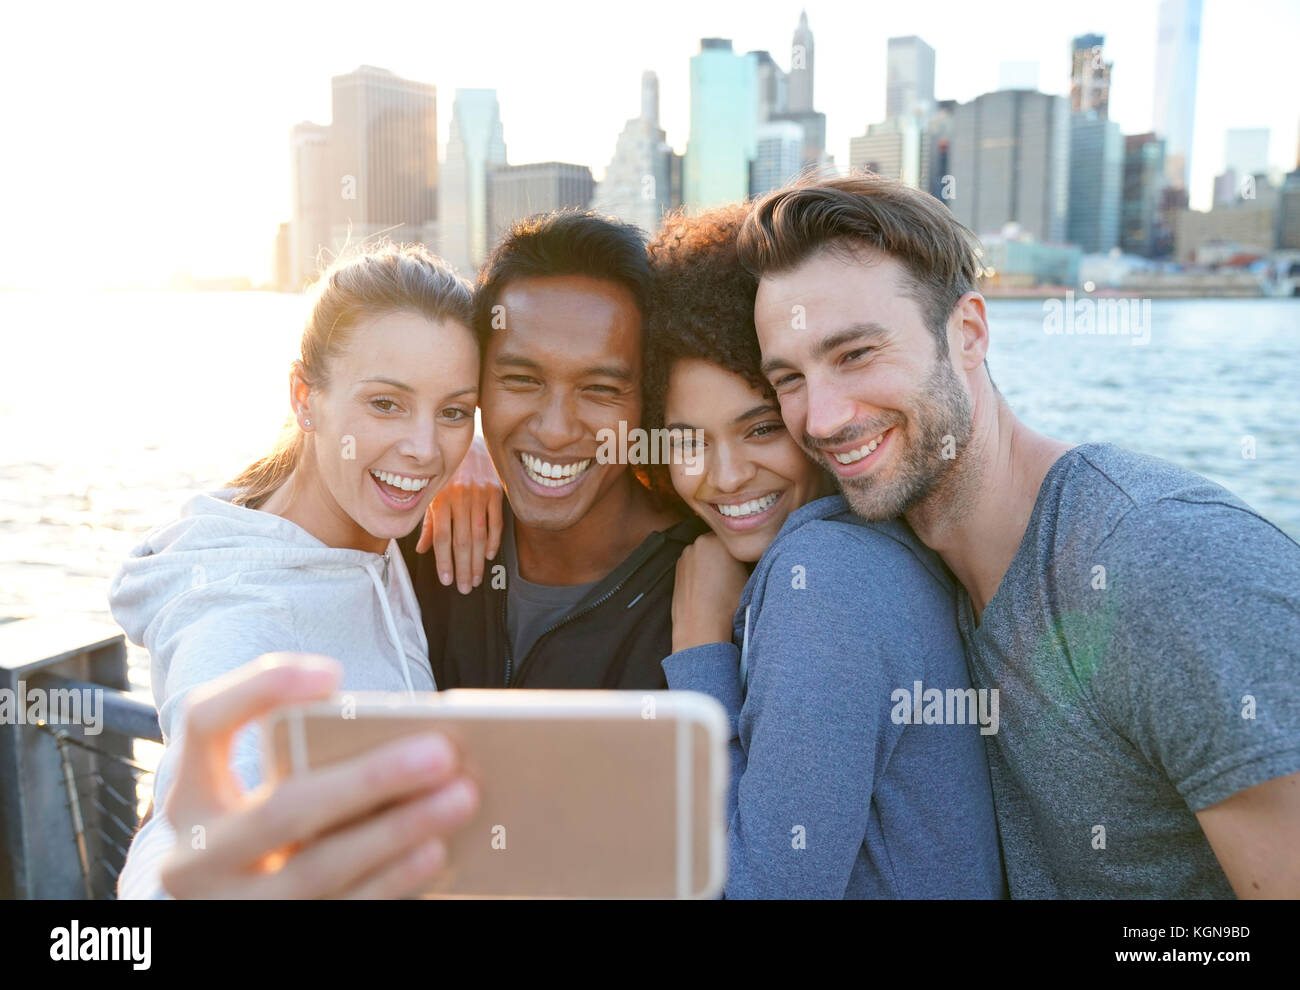 Friends taking selfie picture on Brooklyn heights promenade, NYC - Stock Image